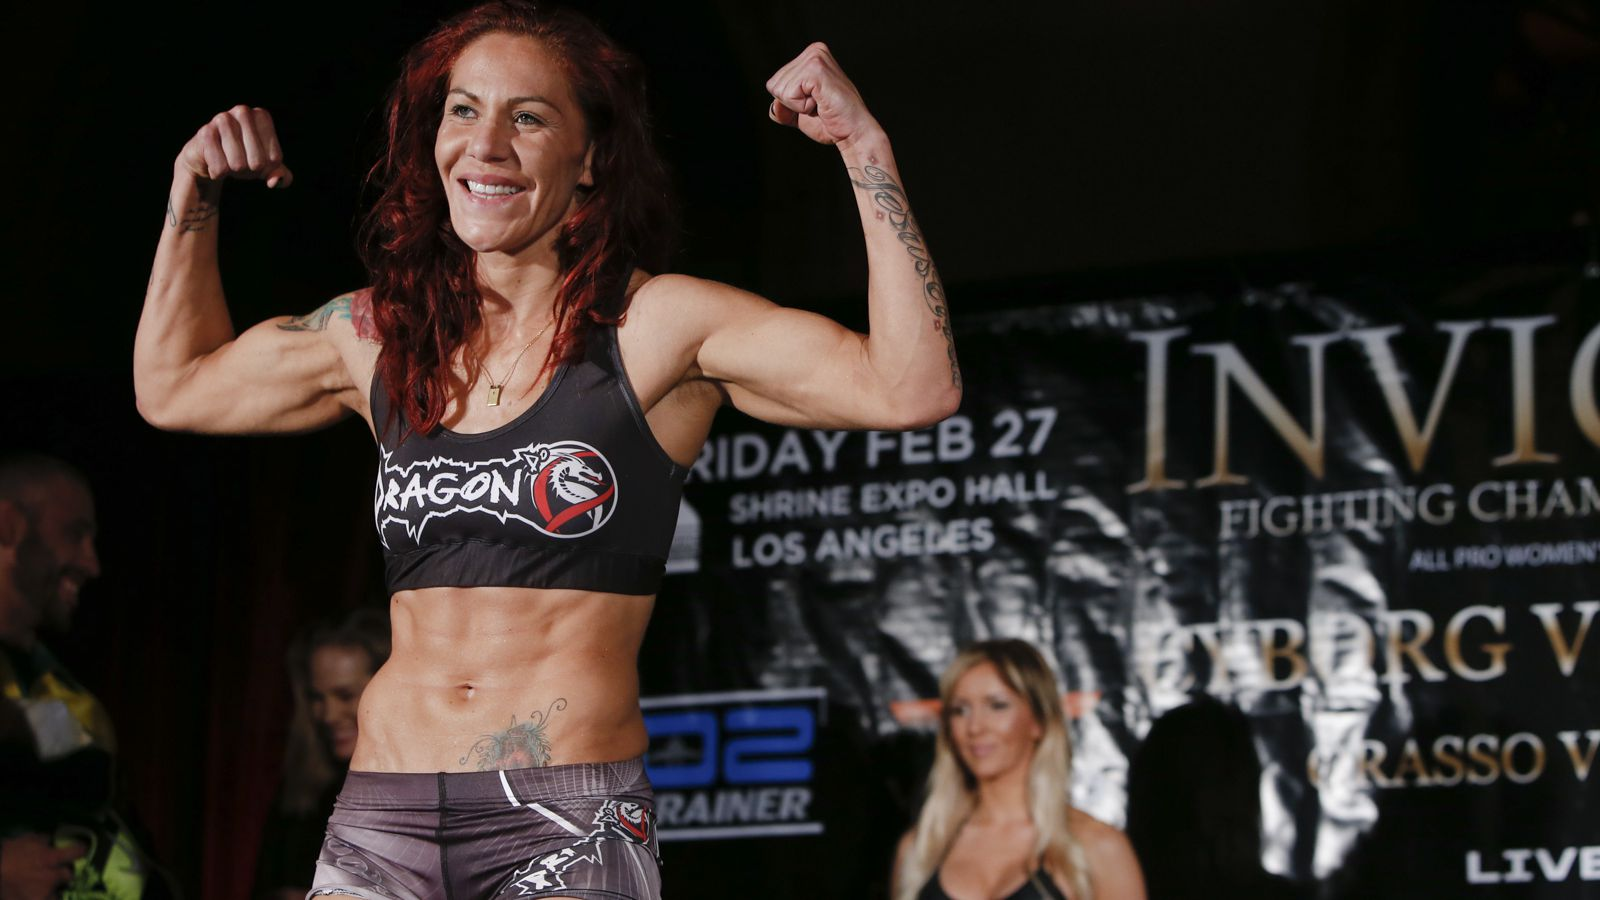 UFC 198: Cris Cyborg 'suffering' to make 140 pounds for Leslie Smith fight in Brazil - MMAmania.com